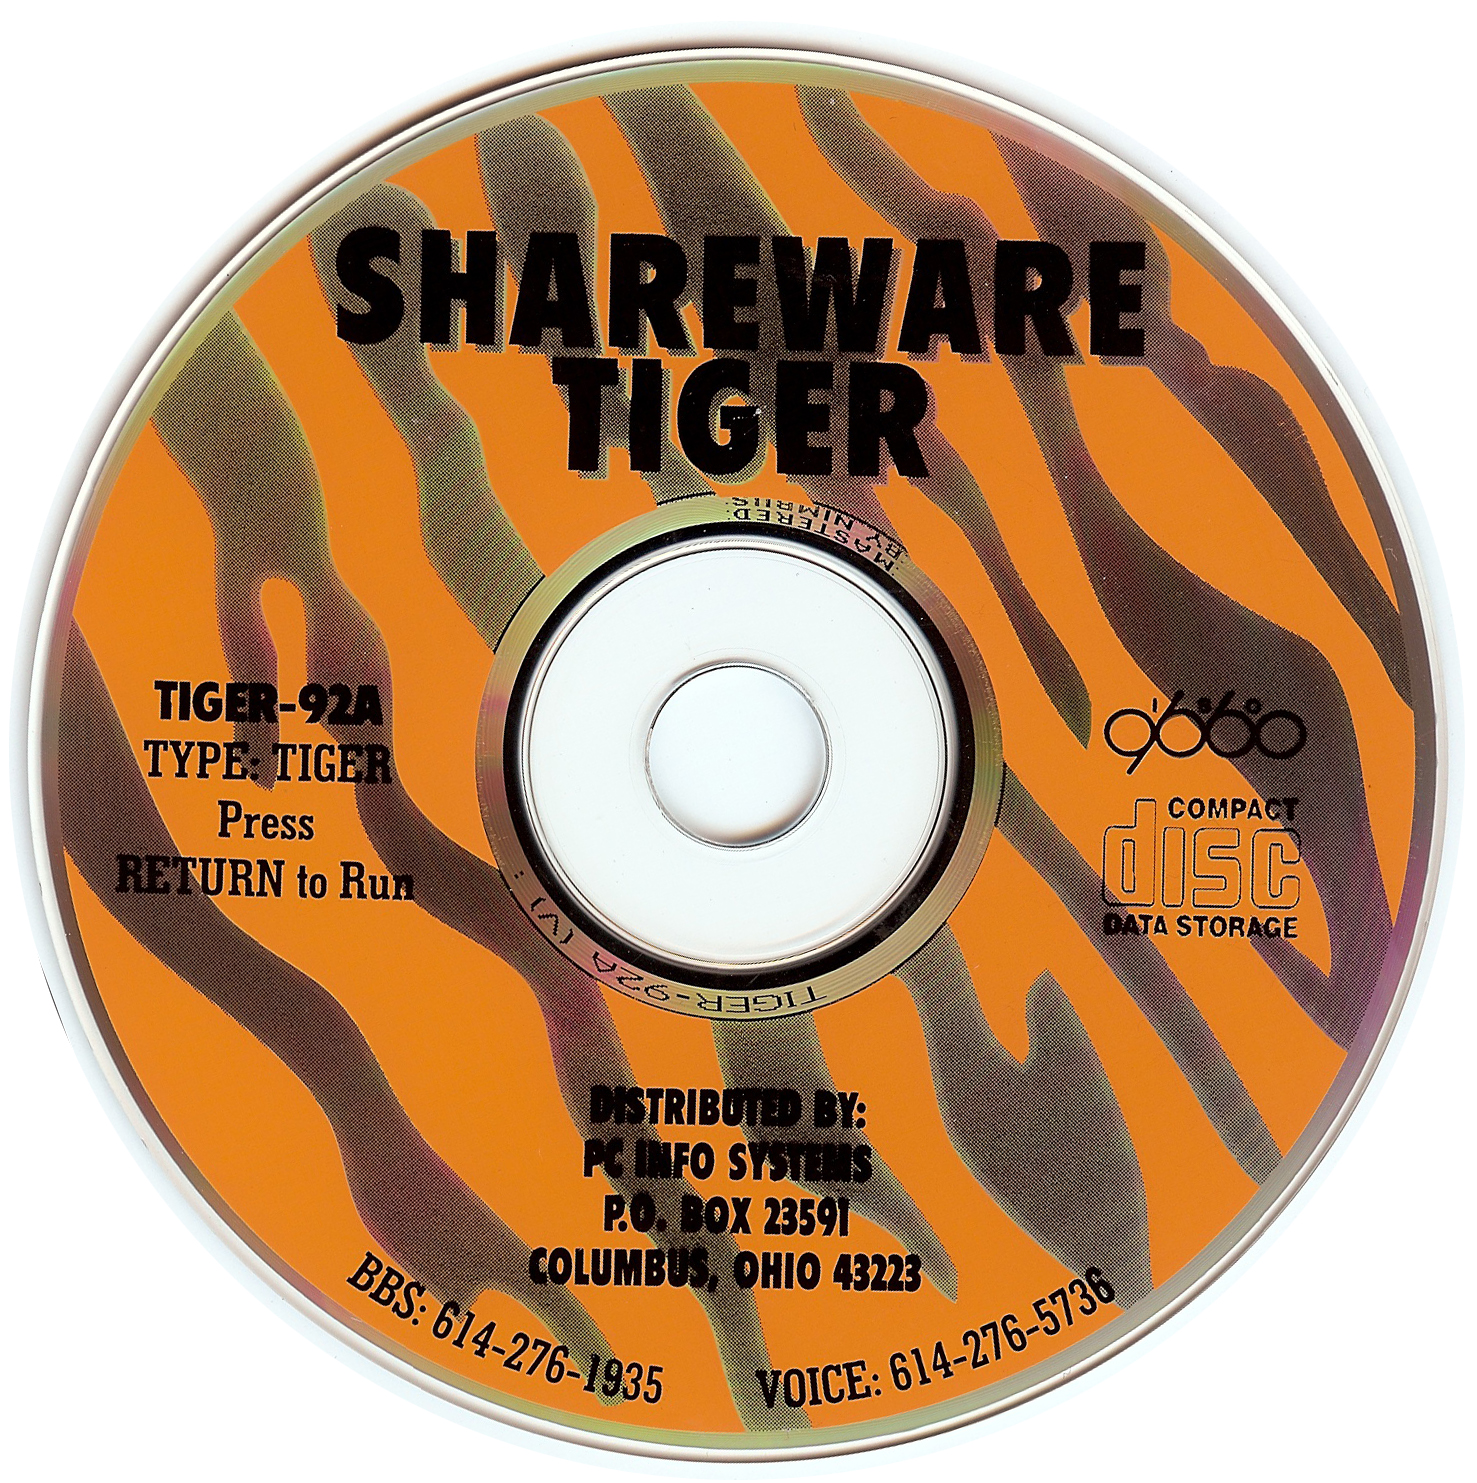 Case study about Freeware, Shareware and Free (Trial)